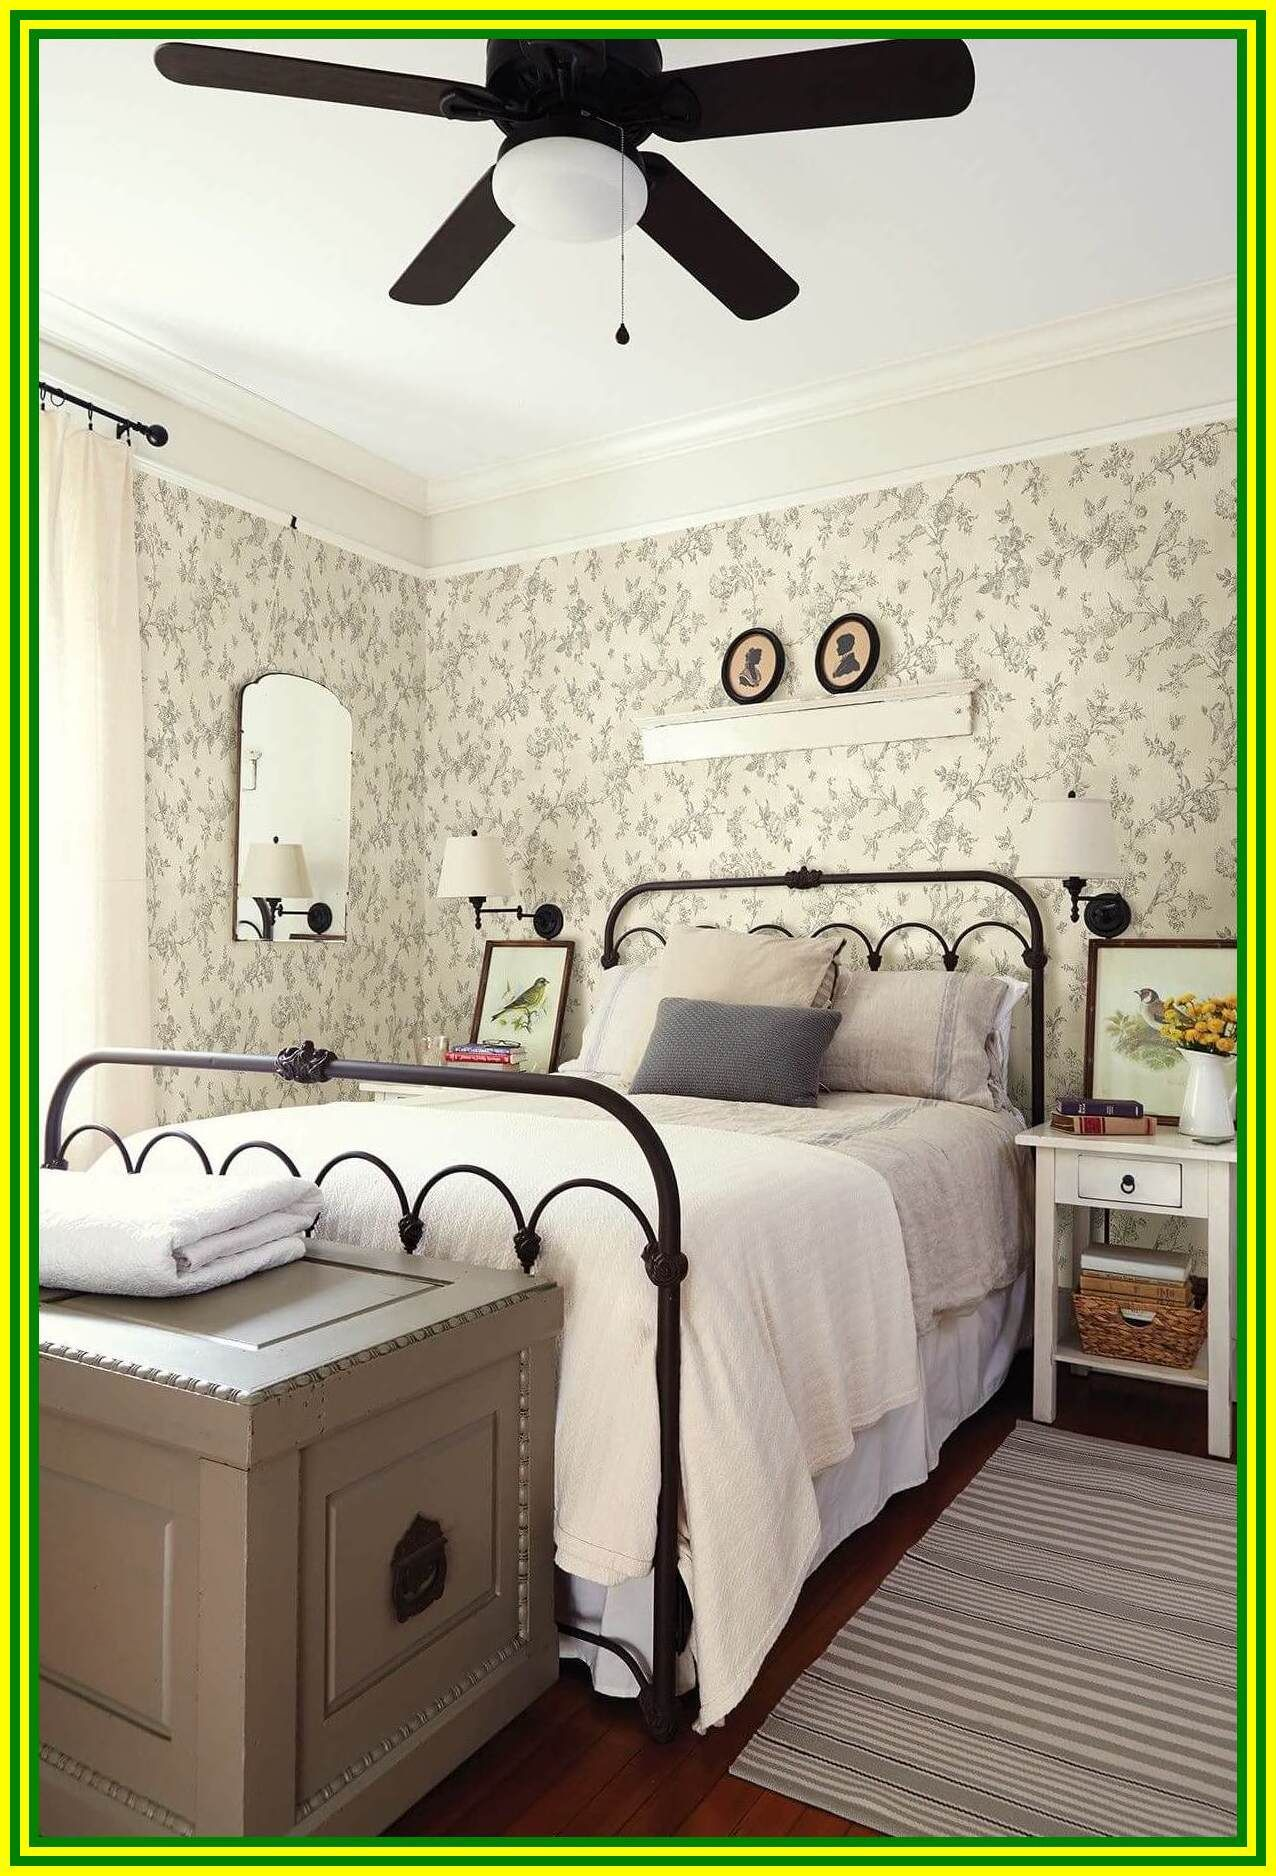 81 reference of Bedroom Style French decorating ideas